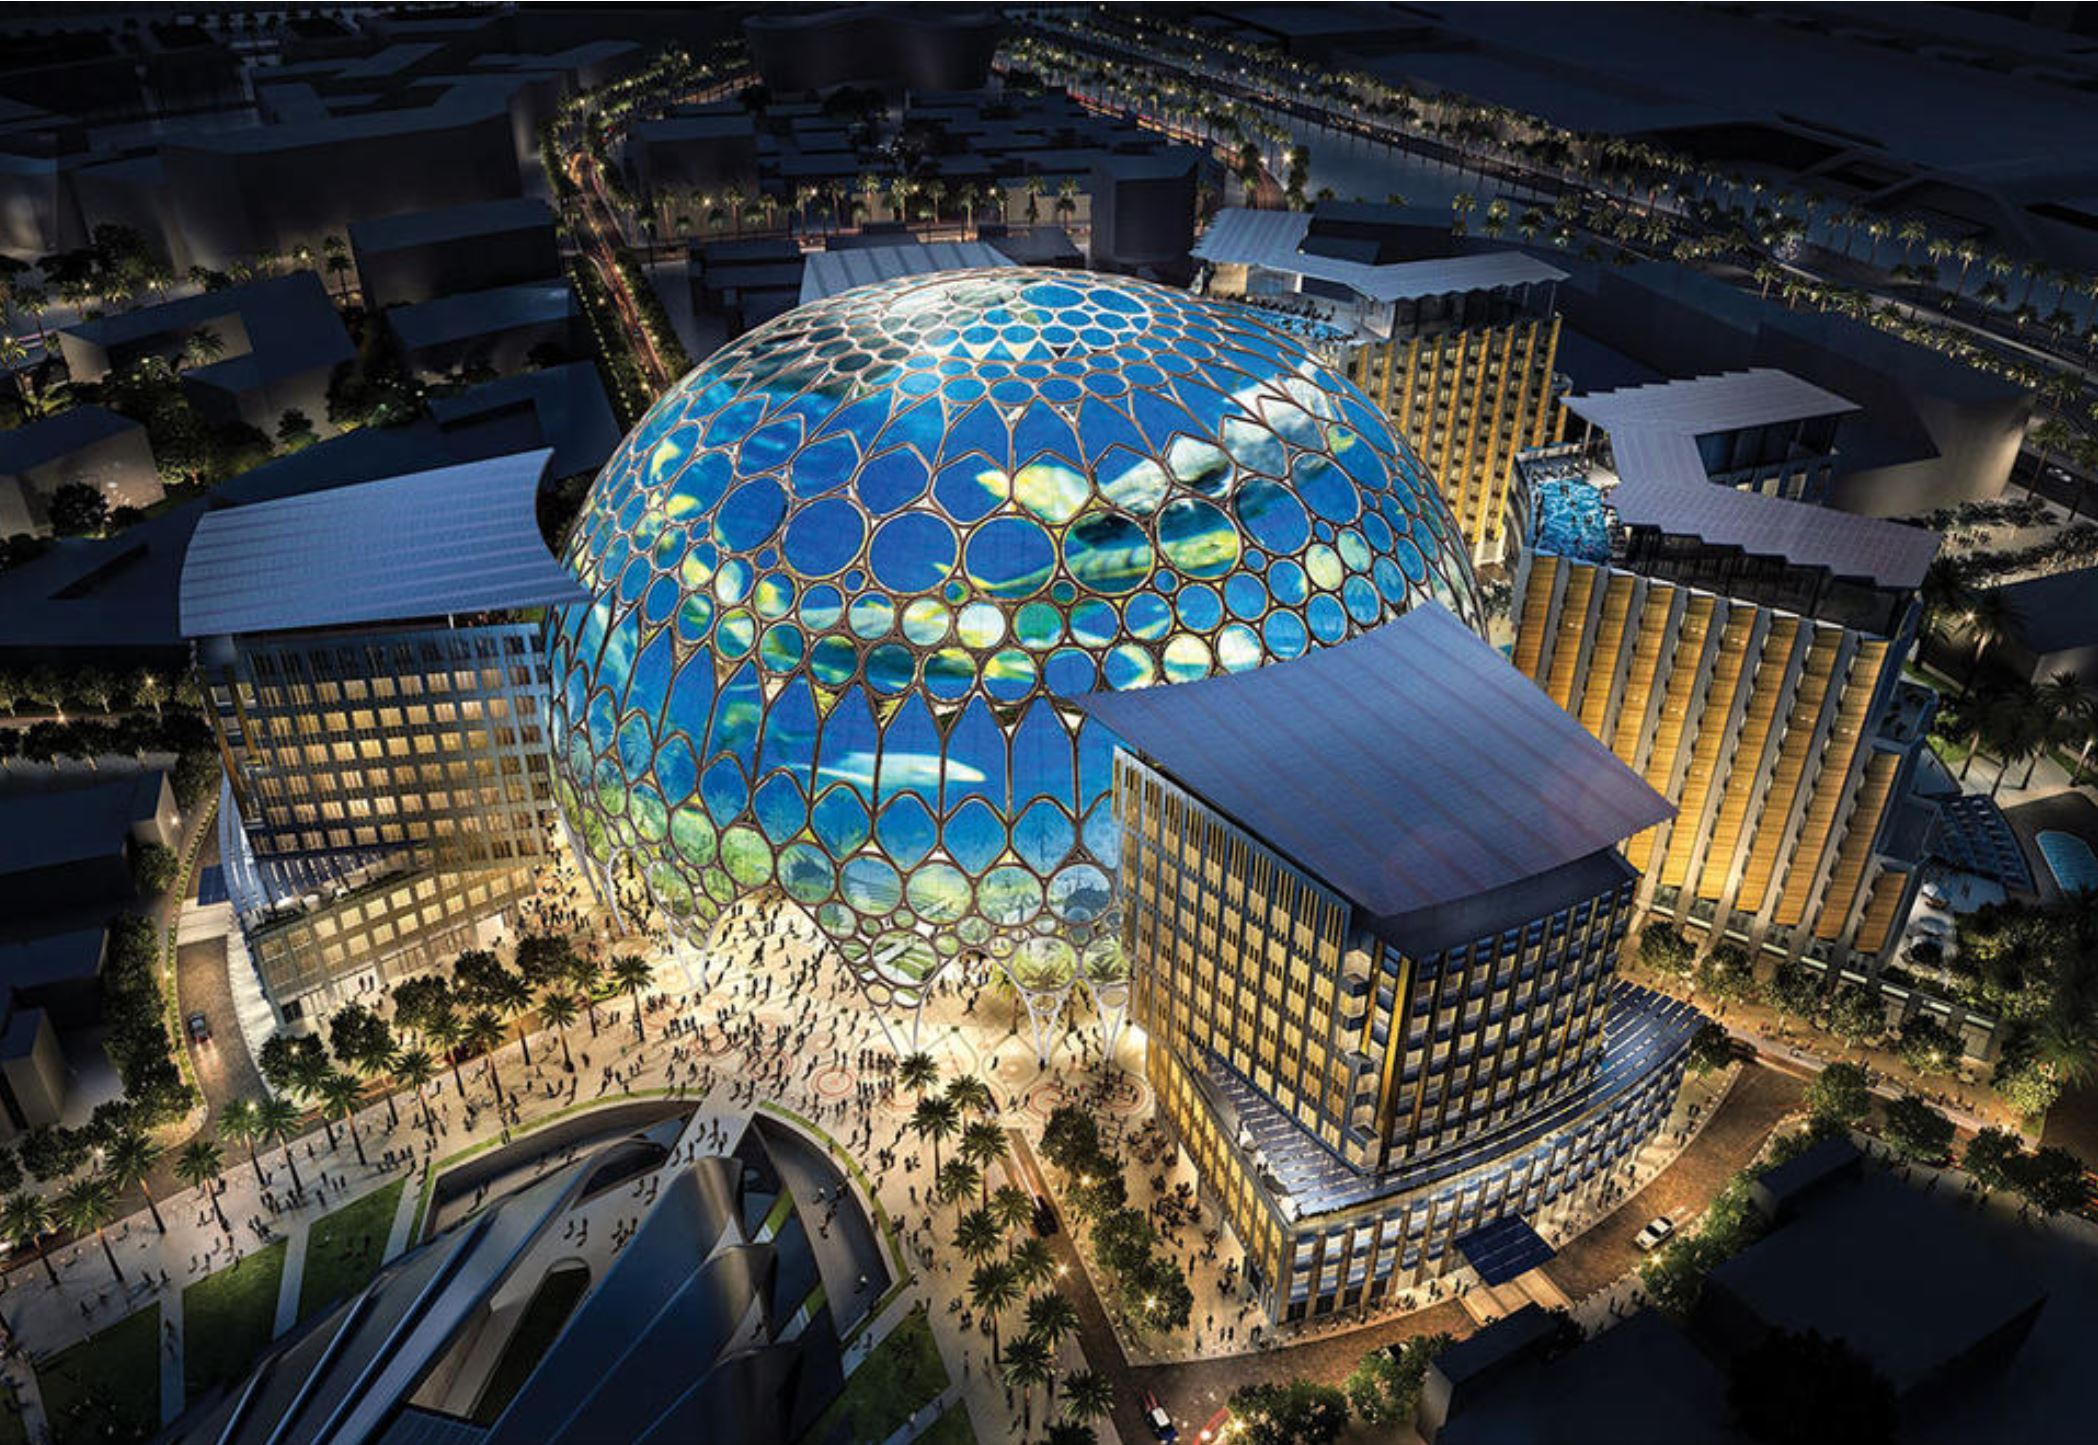 Wealth-X Arabic Business Insider Update 2020 01 06 Dubai Expo 2020 to receive additional funding Hoey Team eXp Realty